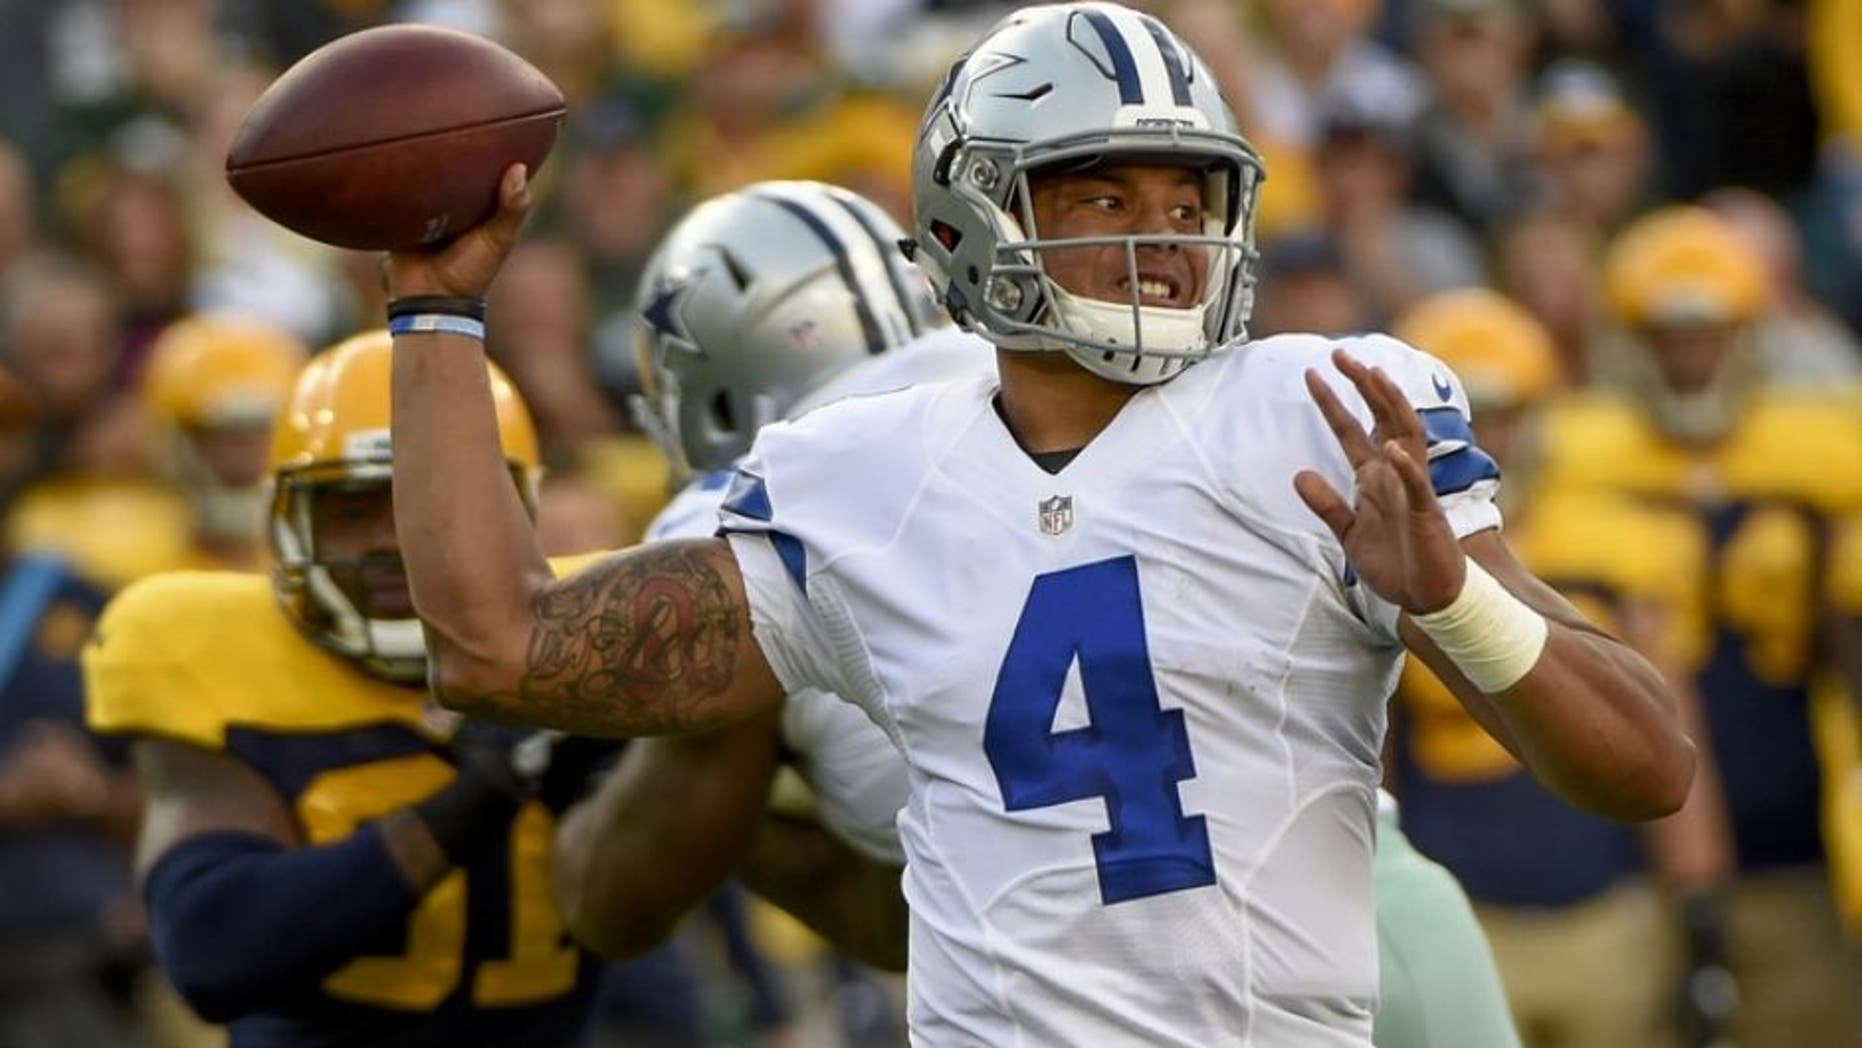 Dallas Cowboys quarterback Dak Prescott said he's ignoring the backlash he's received over his opposition to taking a knee during the anthem.